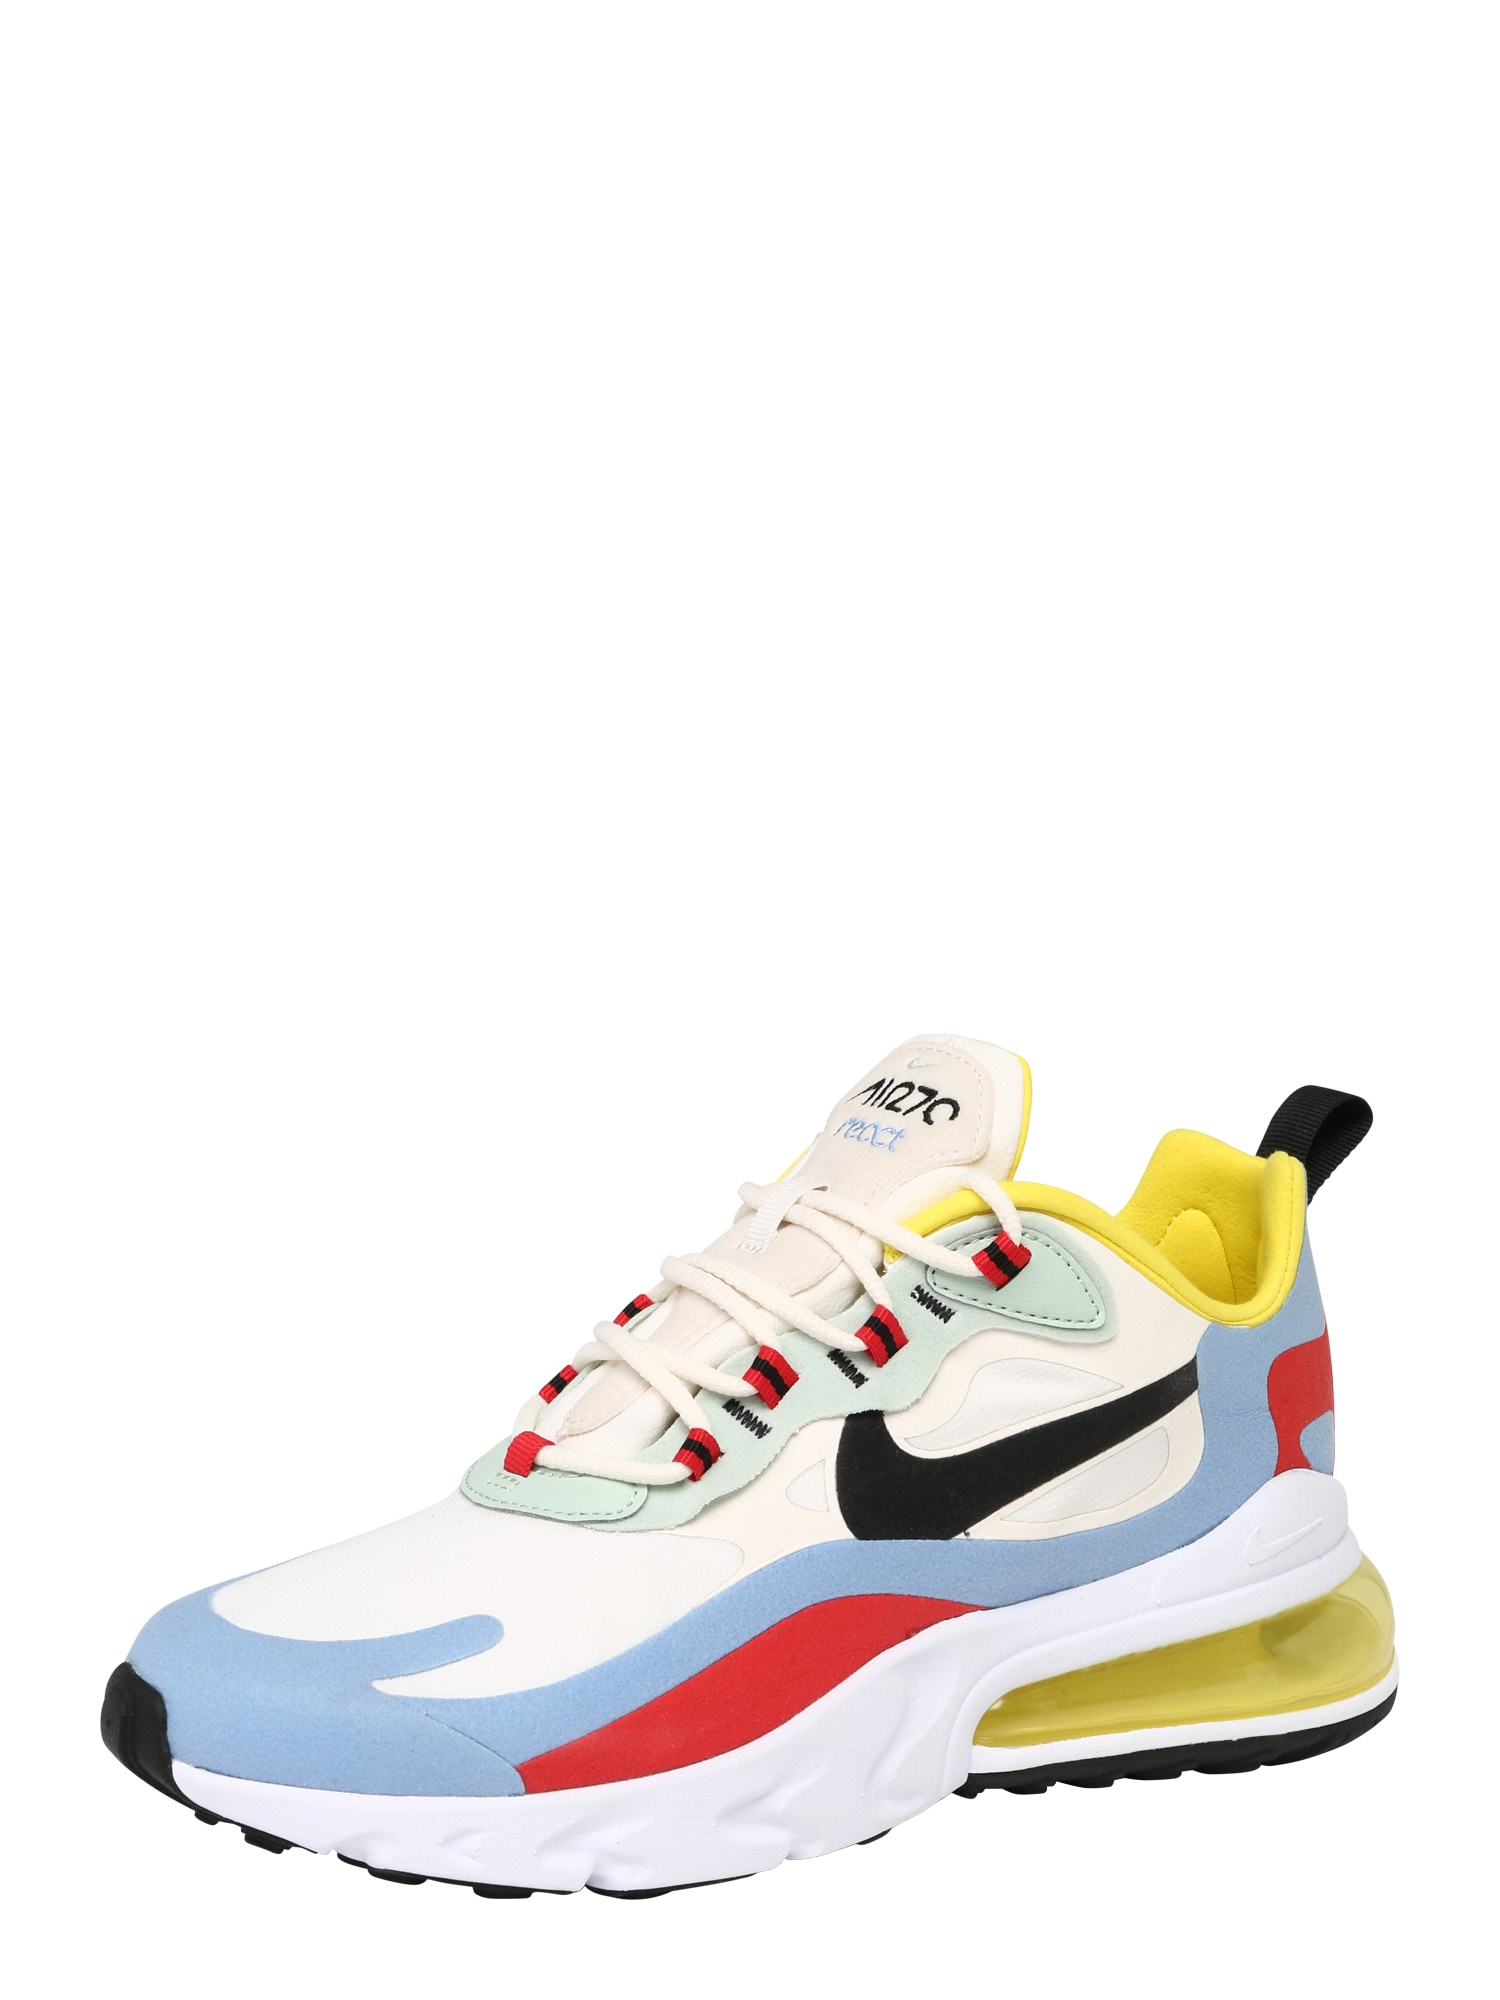 AboutYou | Damen Nike Sportswear Sneaker 'AIR MAX 270 REACT